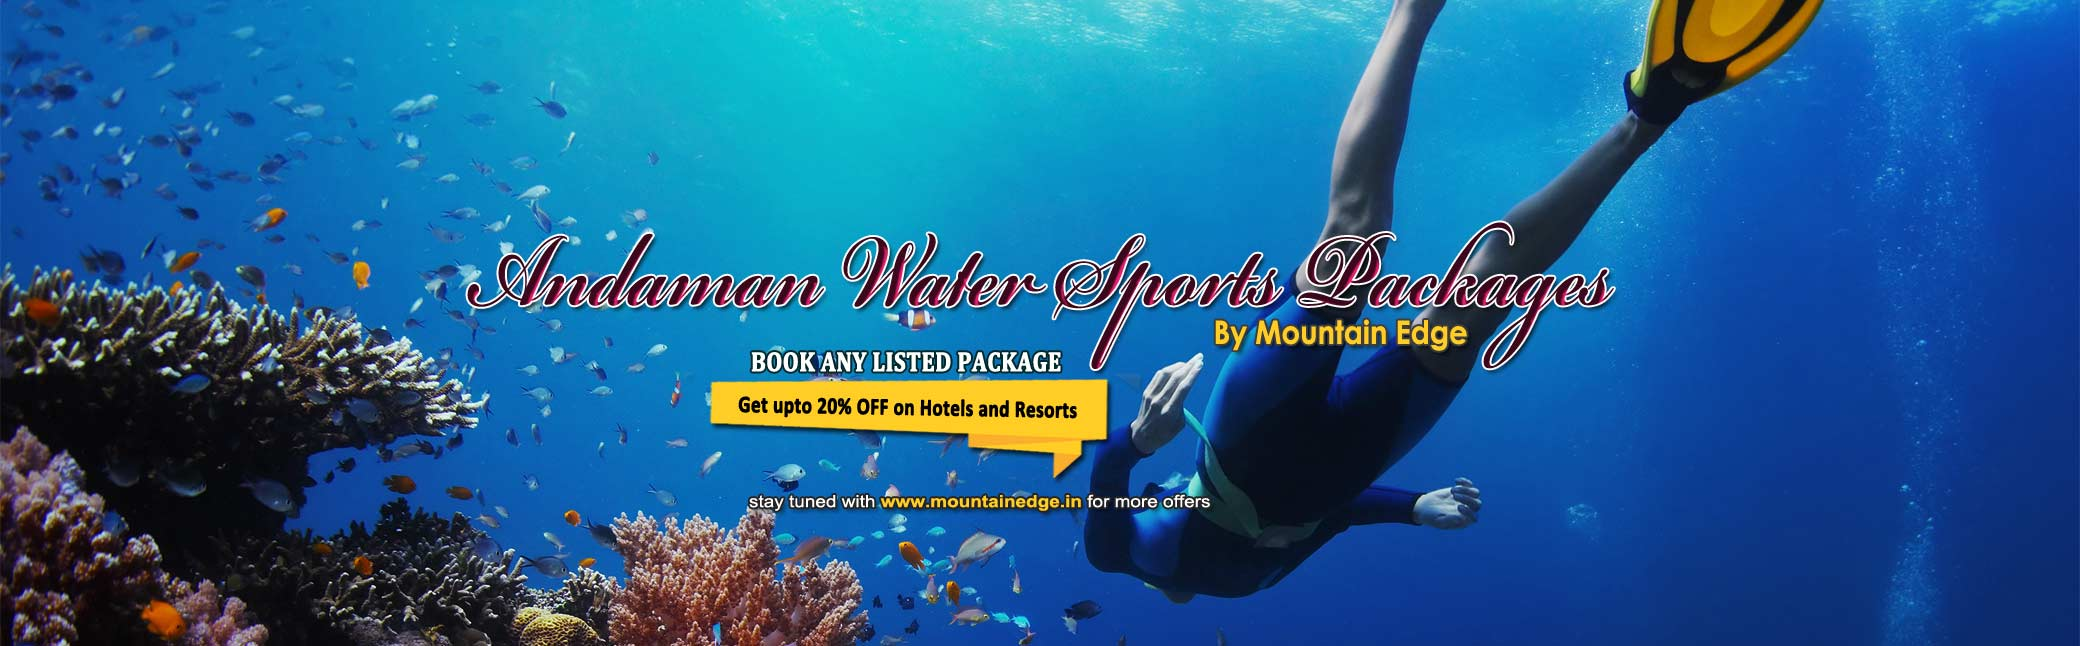 Water_Sports_Package_for_Andaman